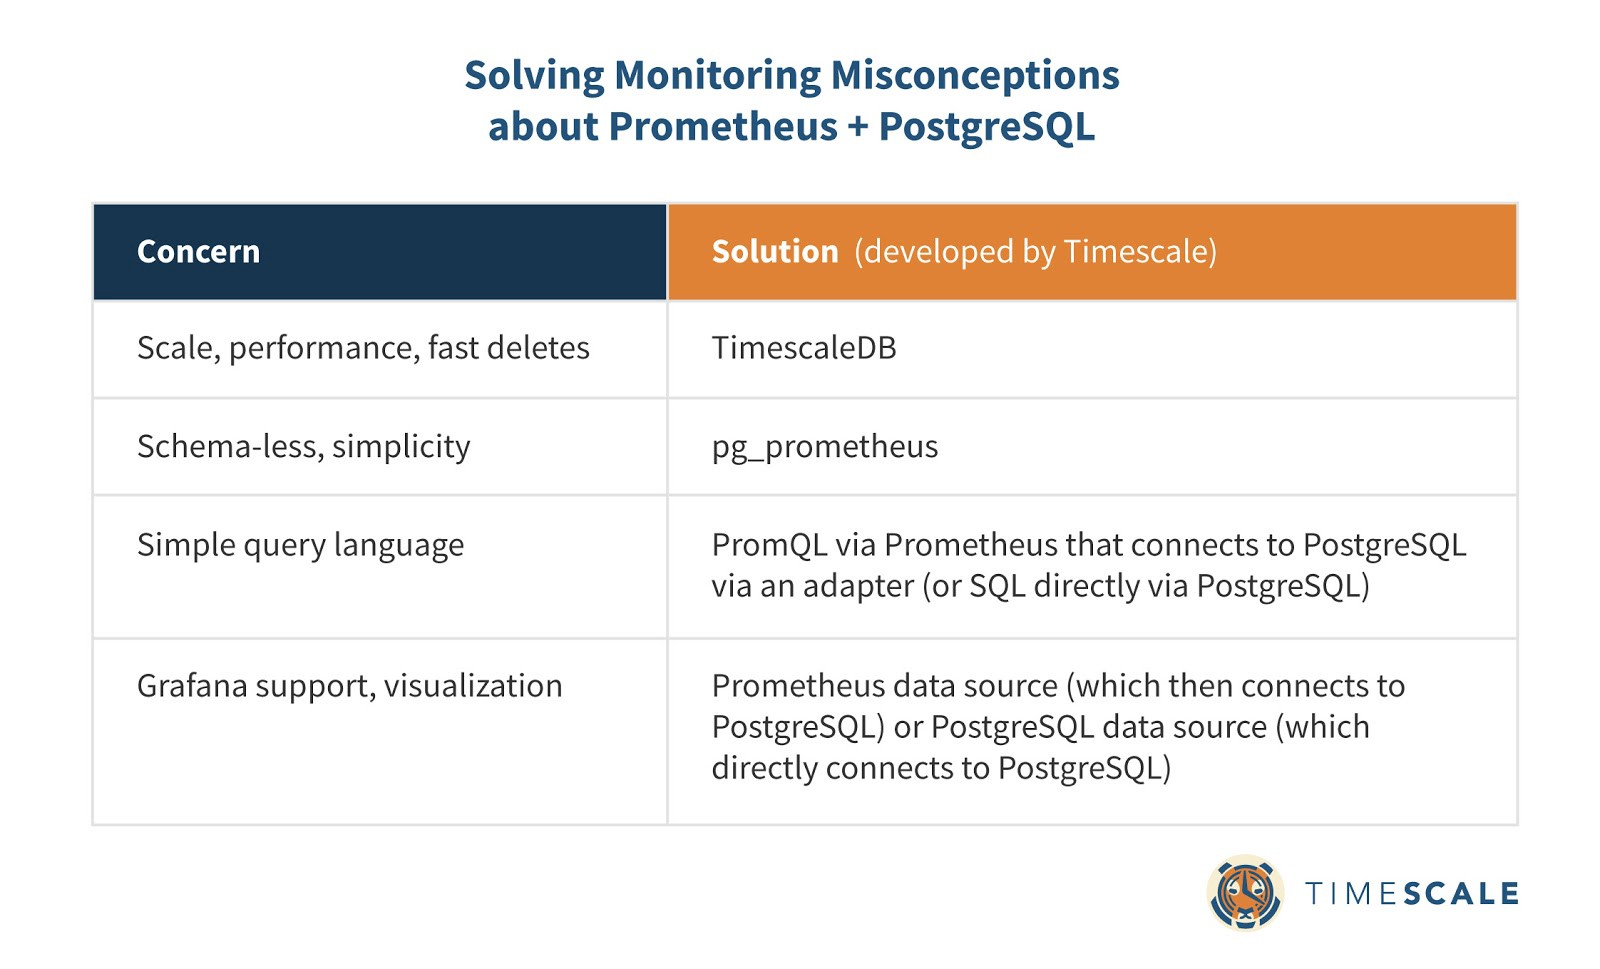 Uniting SQL and NoSQL for monitoring: Why PostgreSQL is the